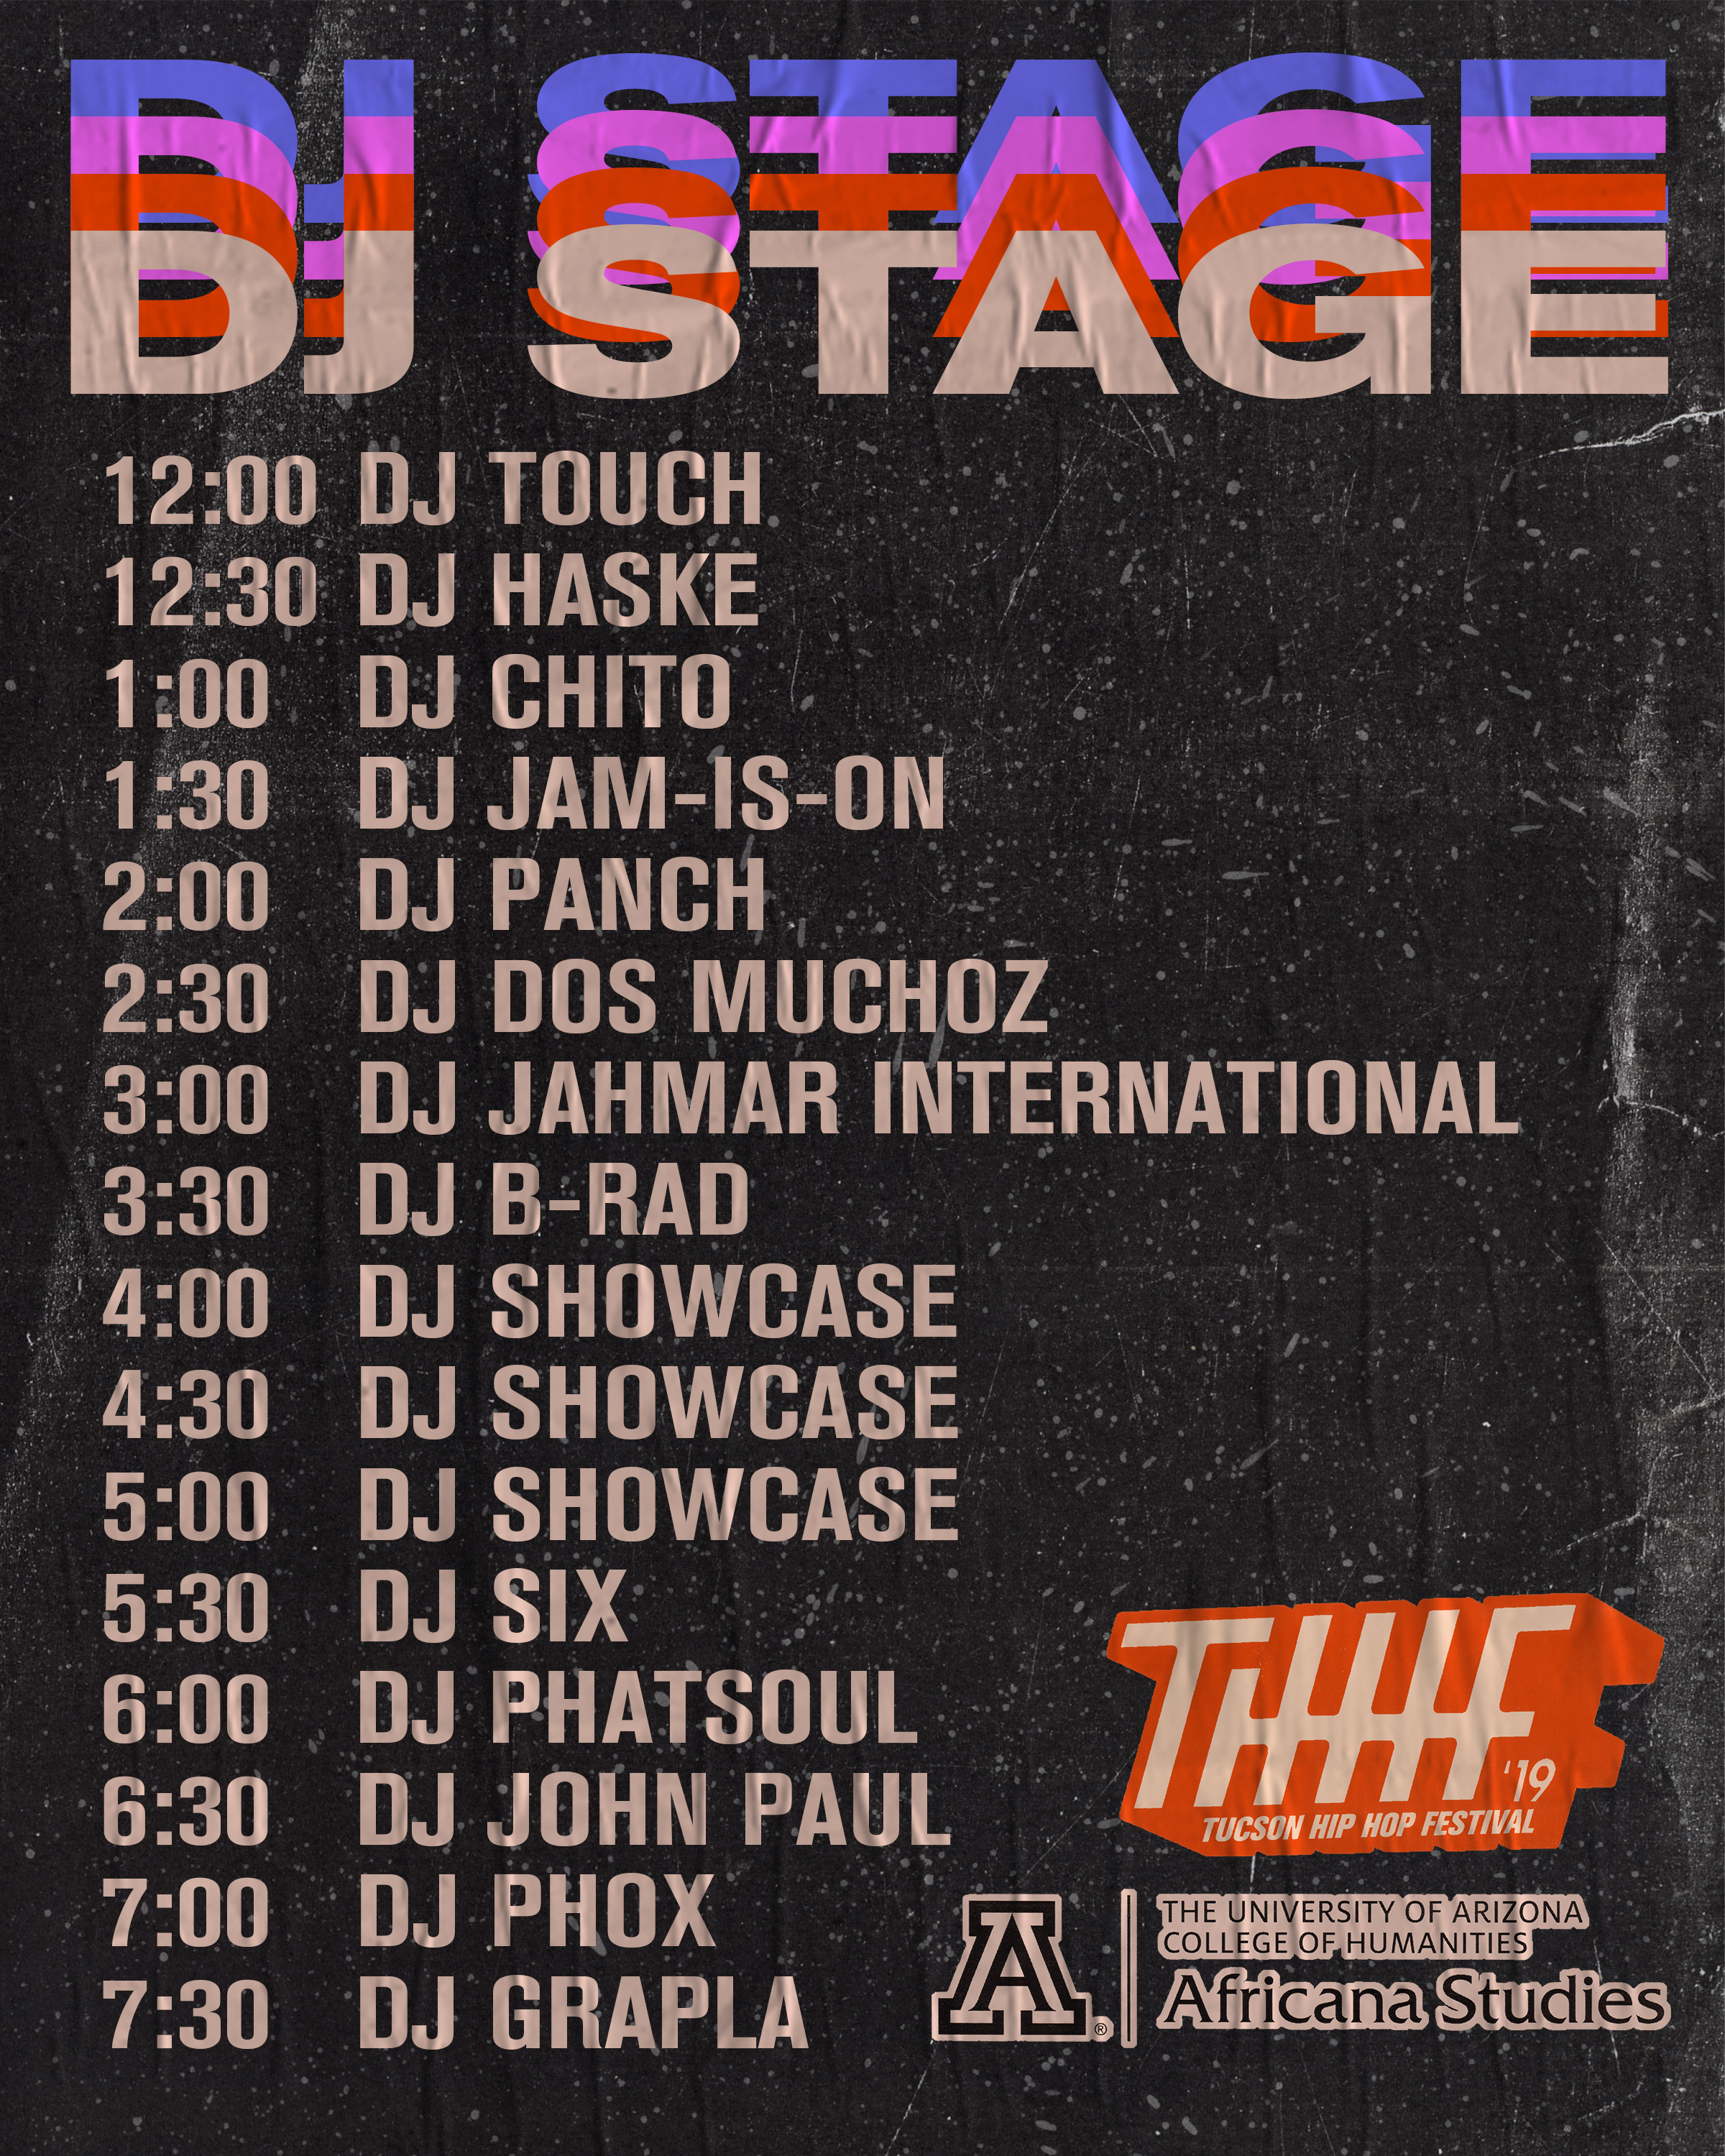 DJ STAGE set times.jpg